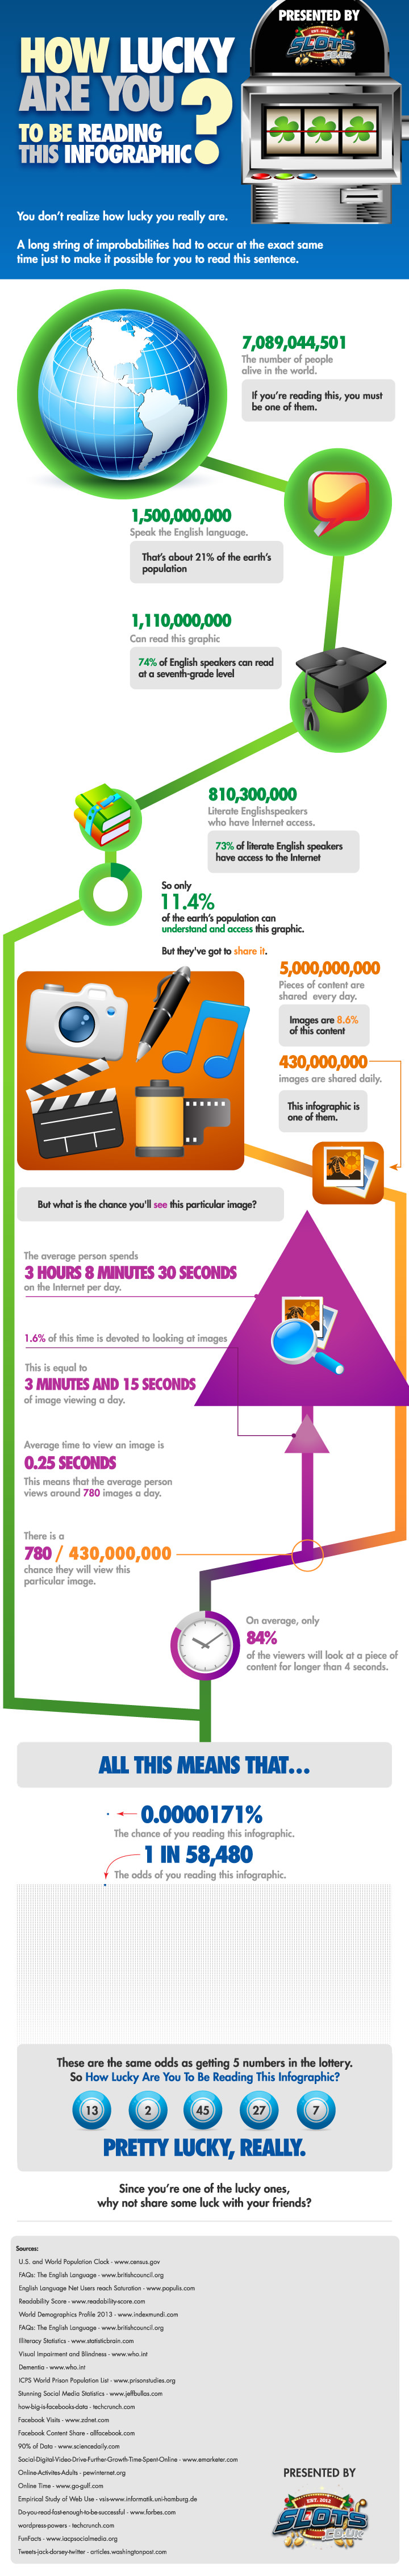 How lucky are you? Infographic